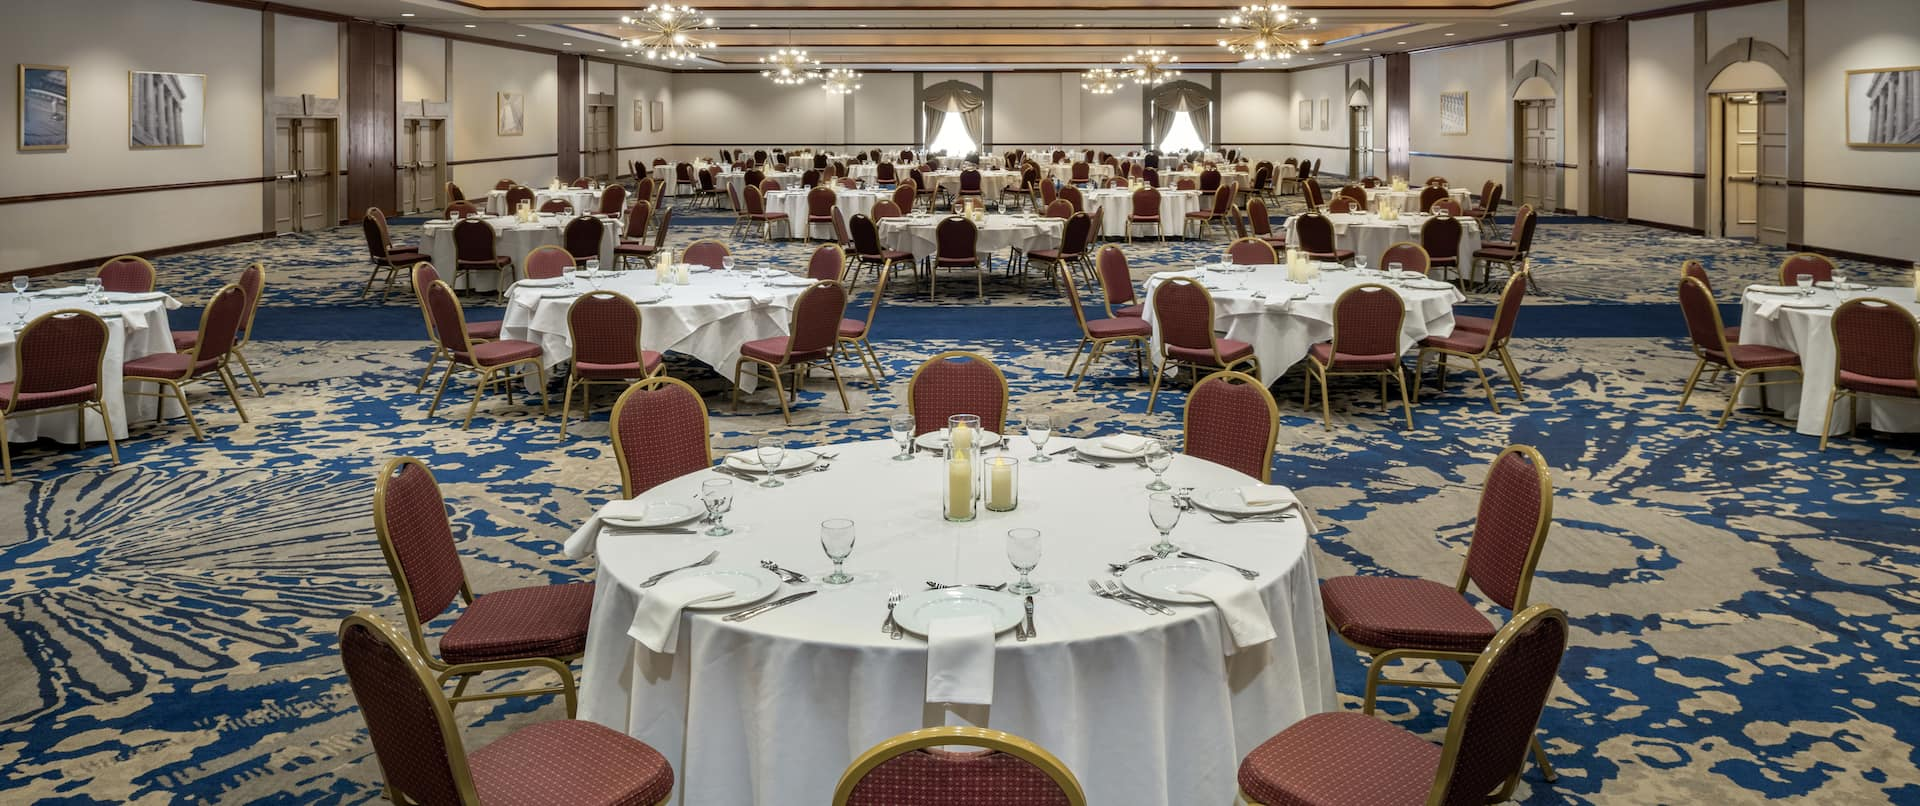 Spacious grand ballroom featuring banquet tables with beautiful linens, table settings, and candles.